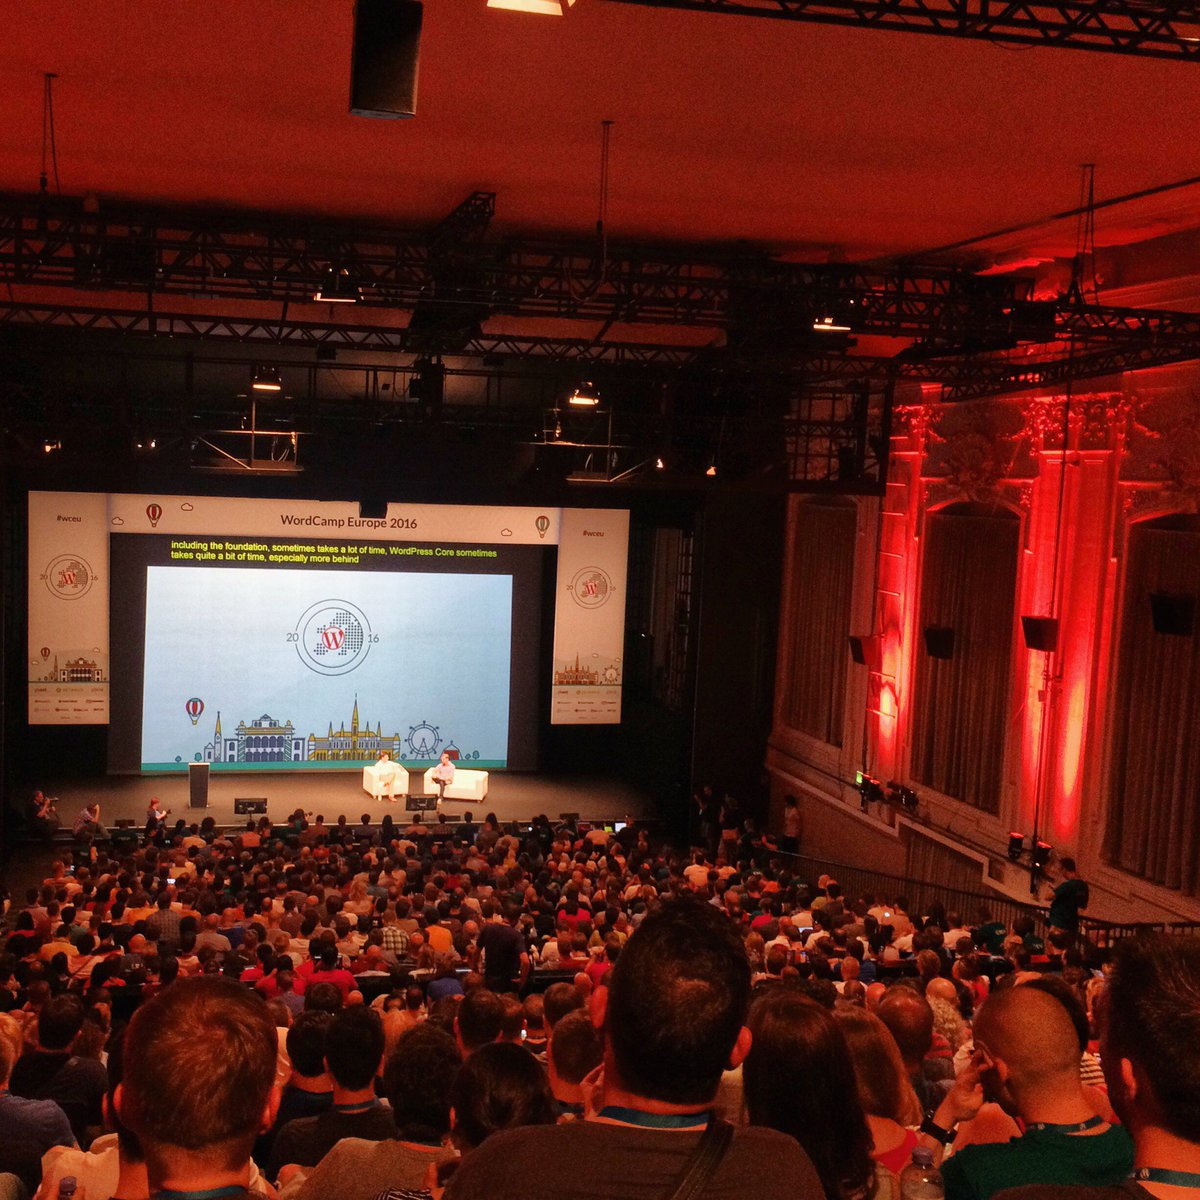 Thumbnail for Interview and Q & A with Matt Mullenweg: WordCamp Europe 2016